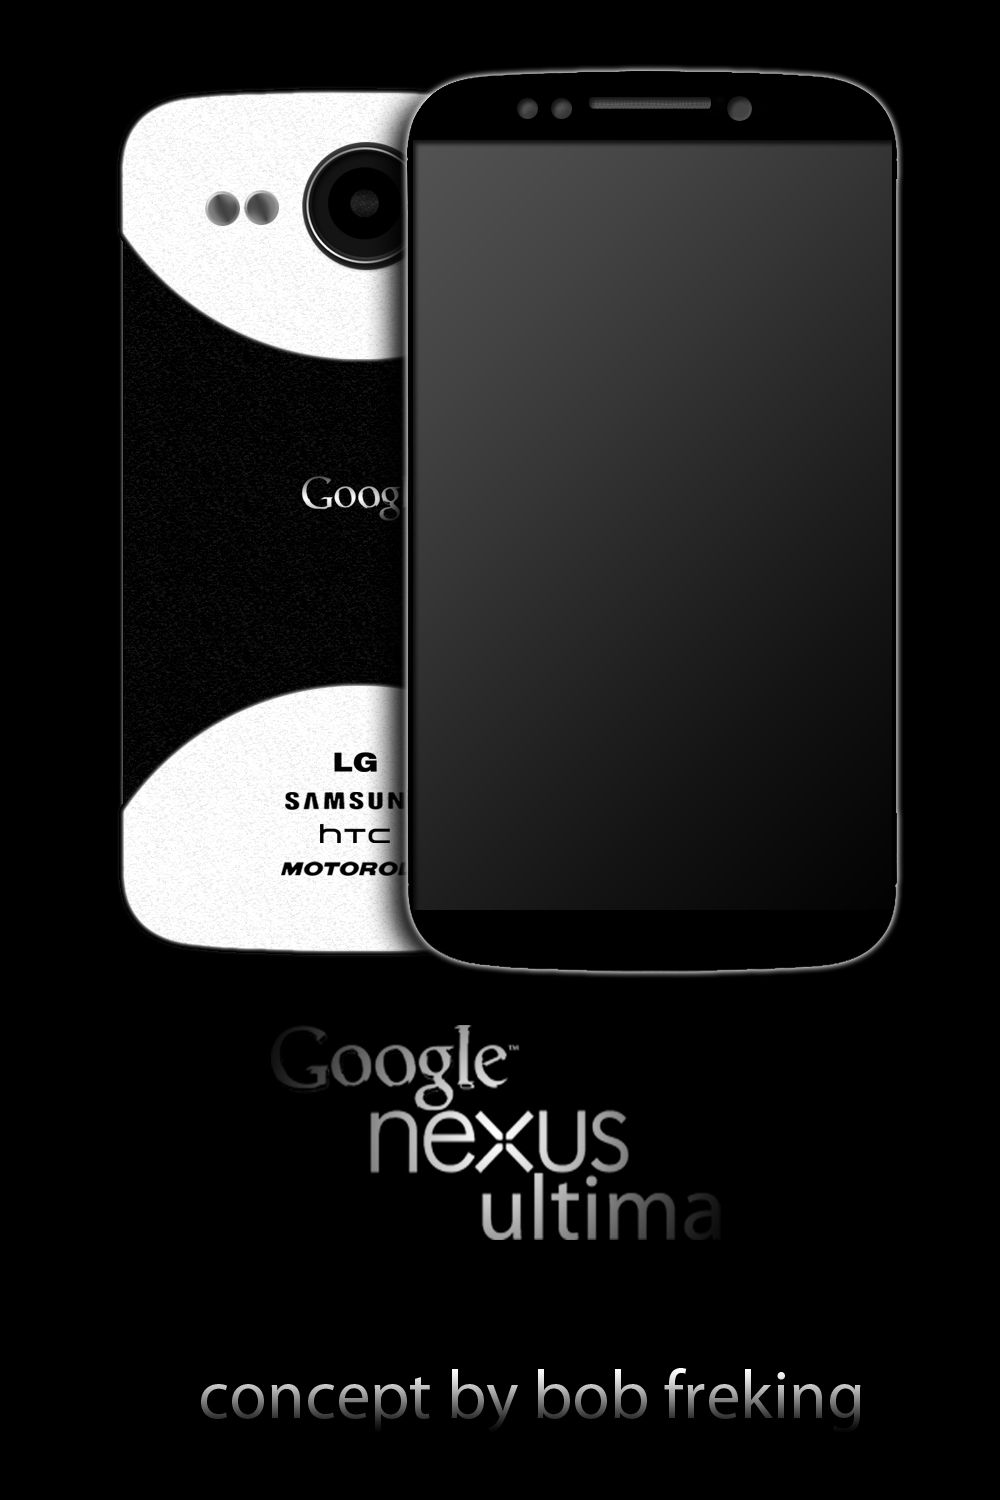 Google Nexus Ultima, the First Android Jellybean Device